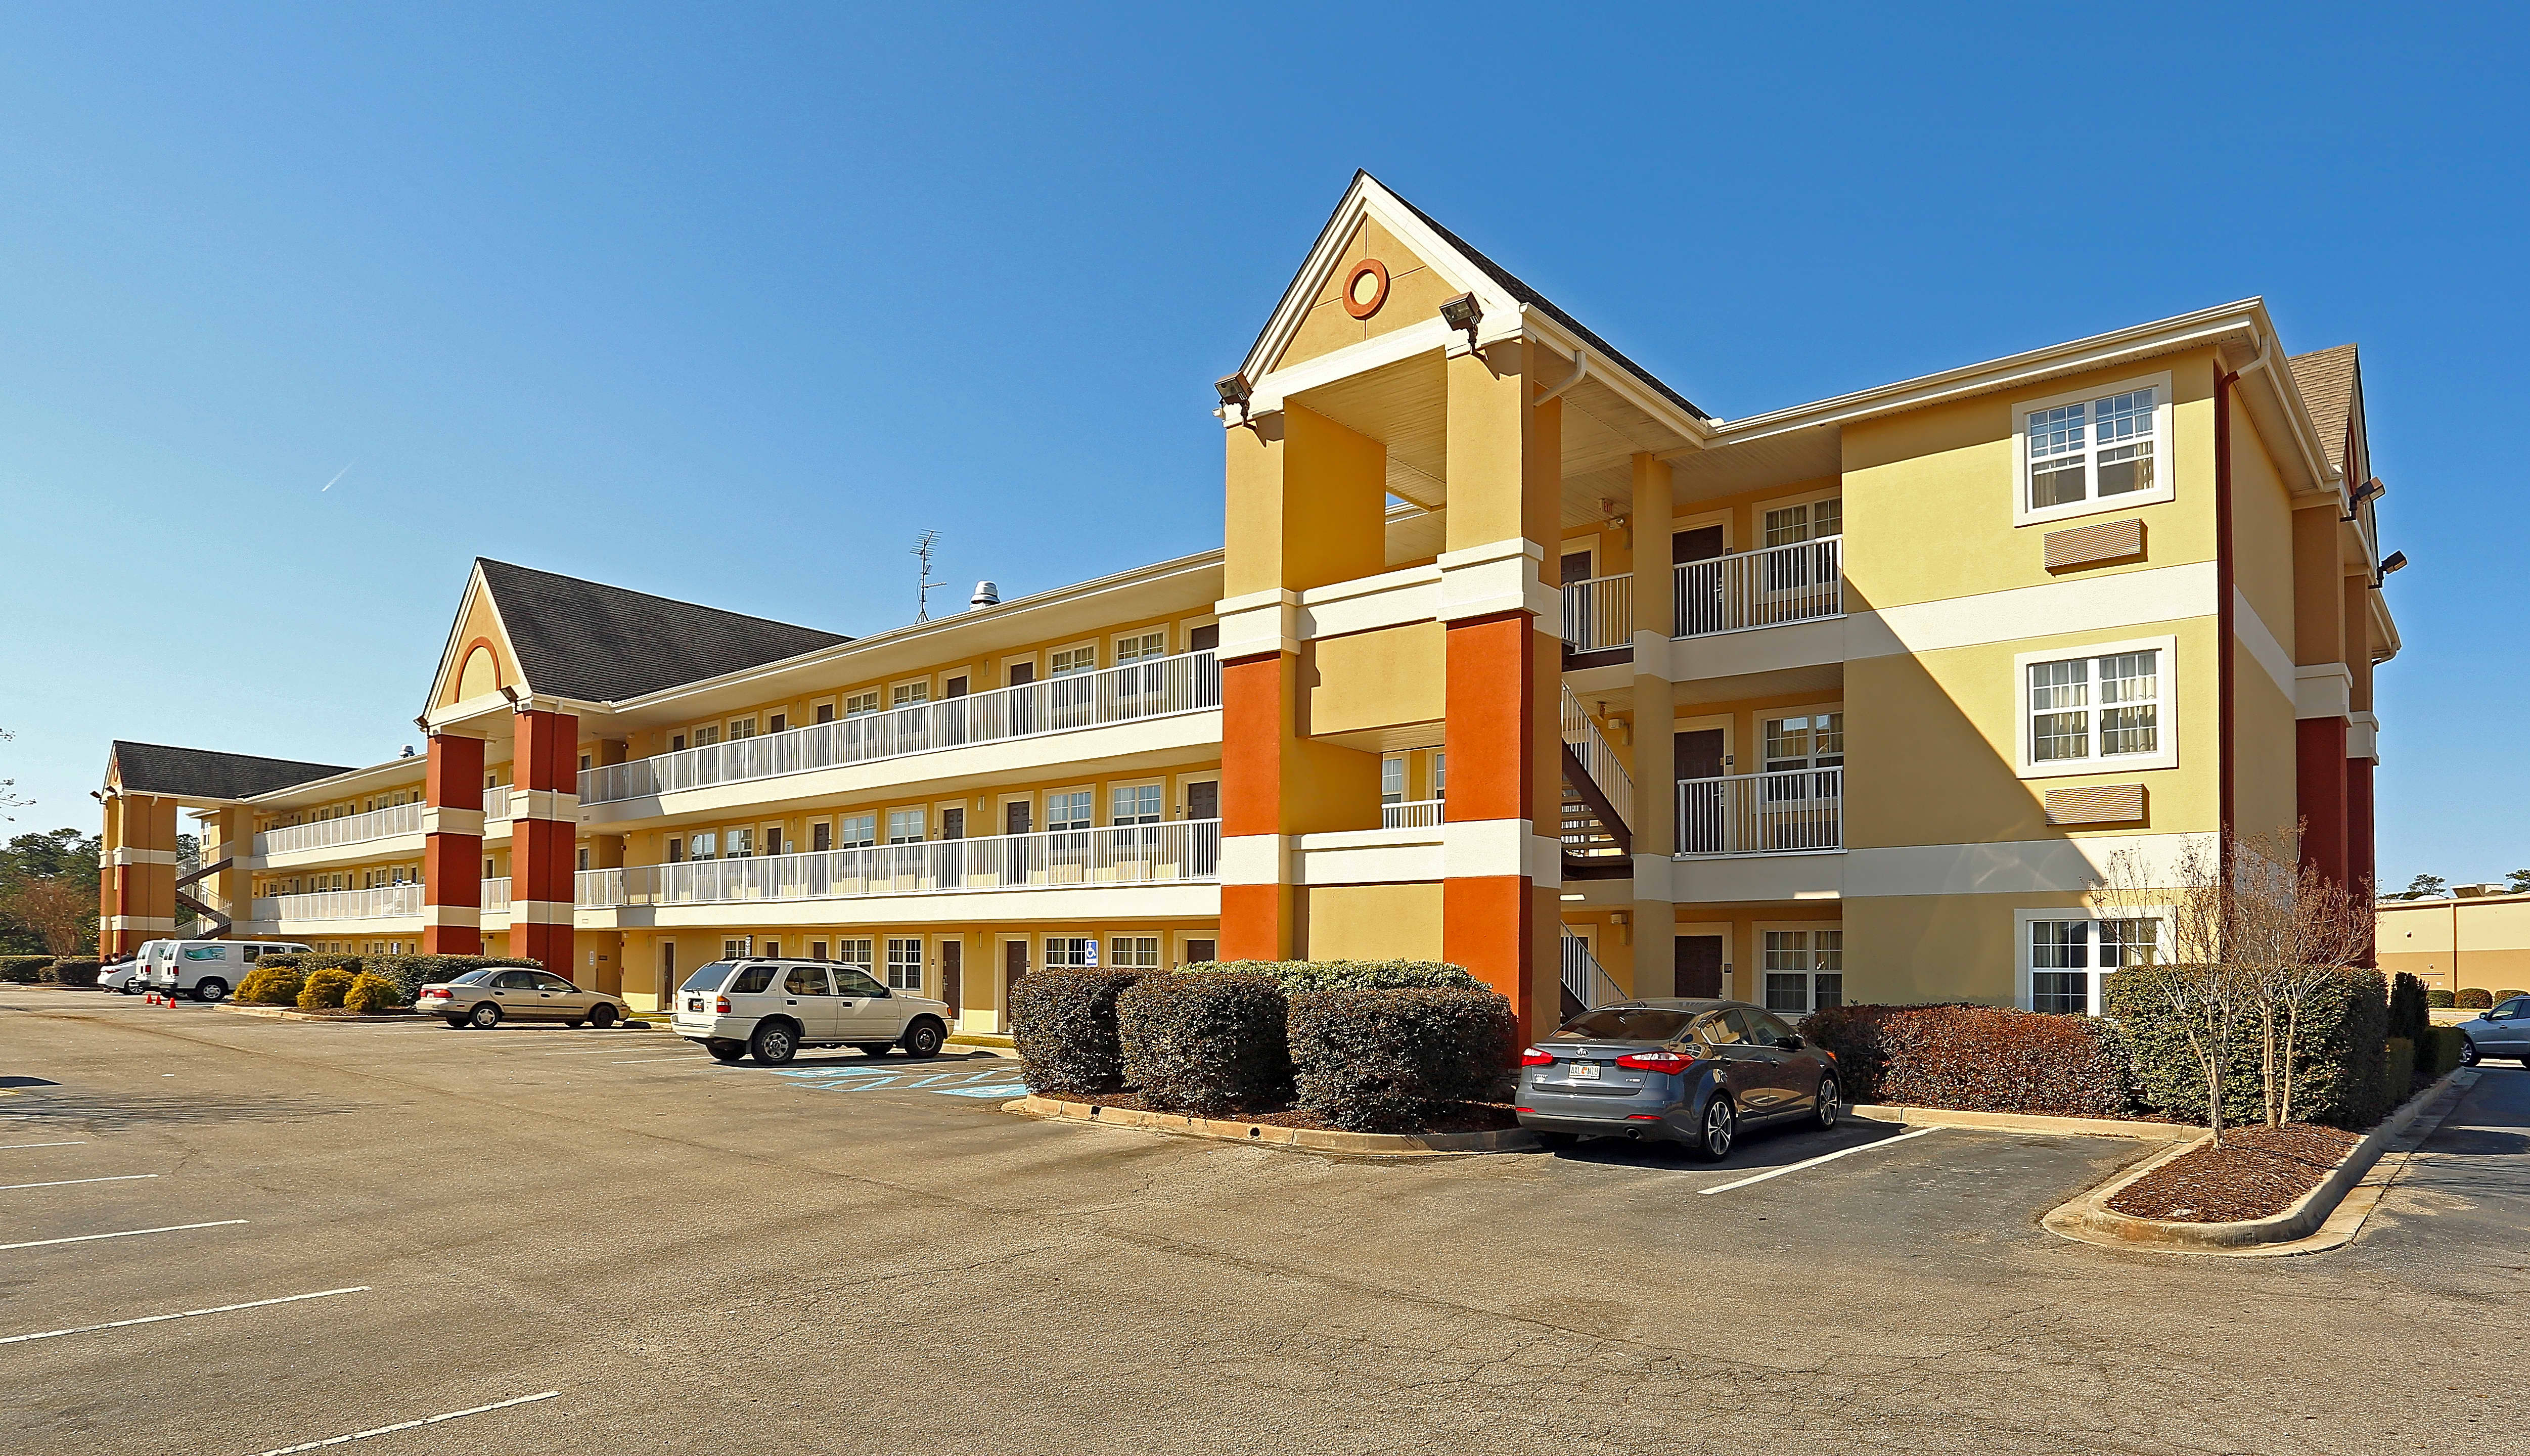 Apartments Near UofSC Furnished Studio - Columbia - Ft. Jackson for University of South Carolina Students in Columbia, SC